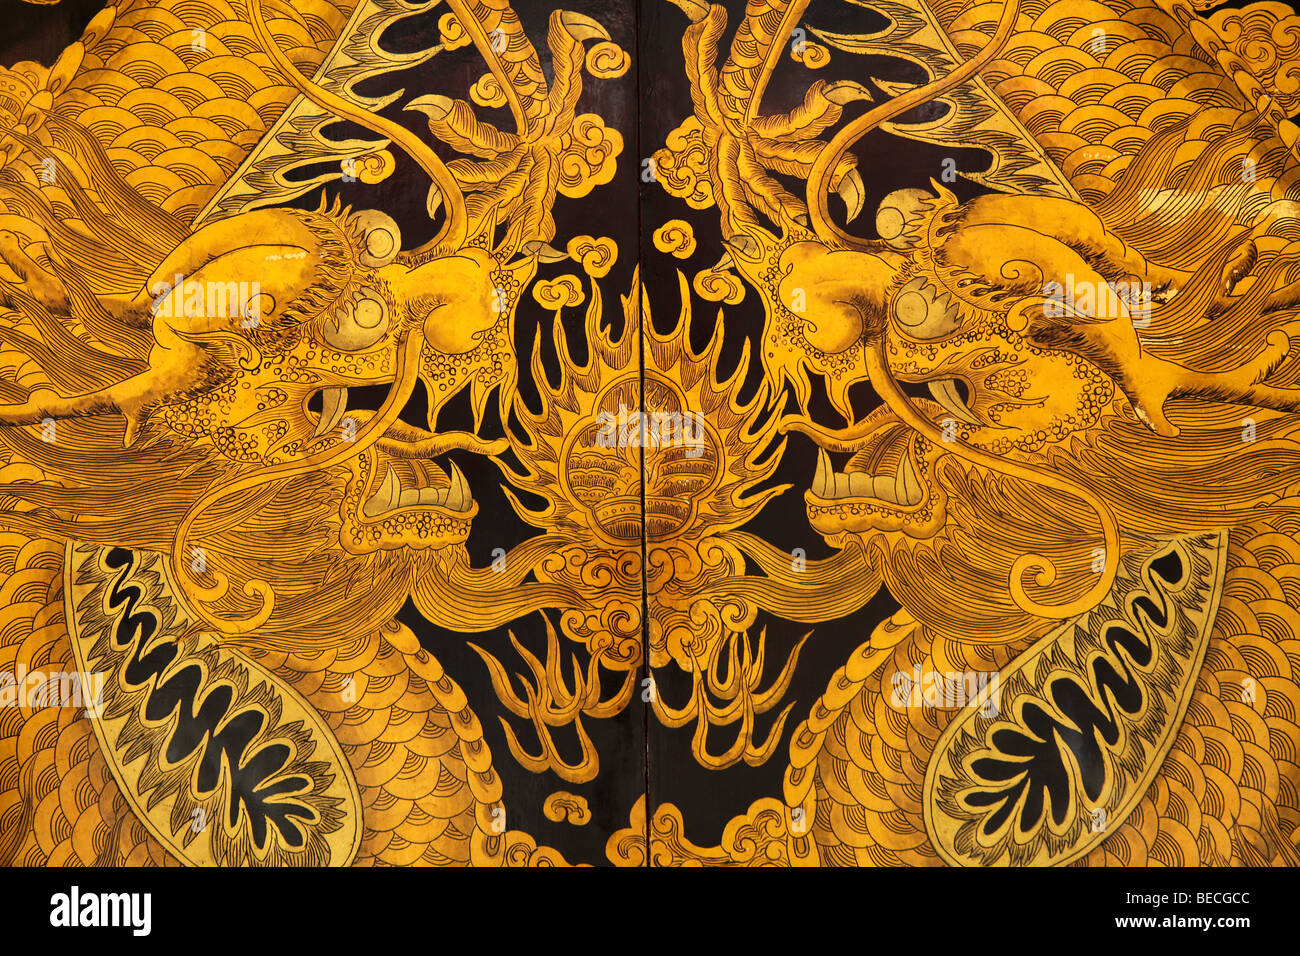 Dragon on the gate to the Thian Hock Keng temple in Chinatown in Singapore, Asia - Stock Image